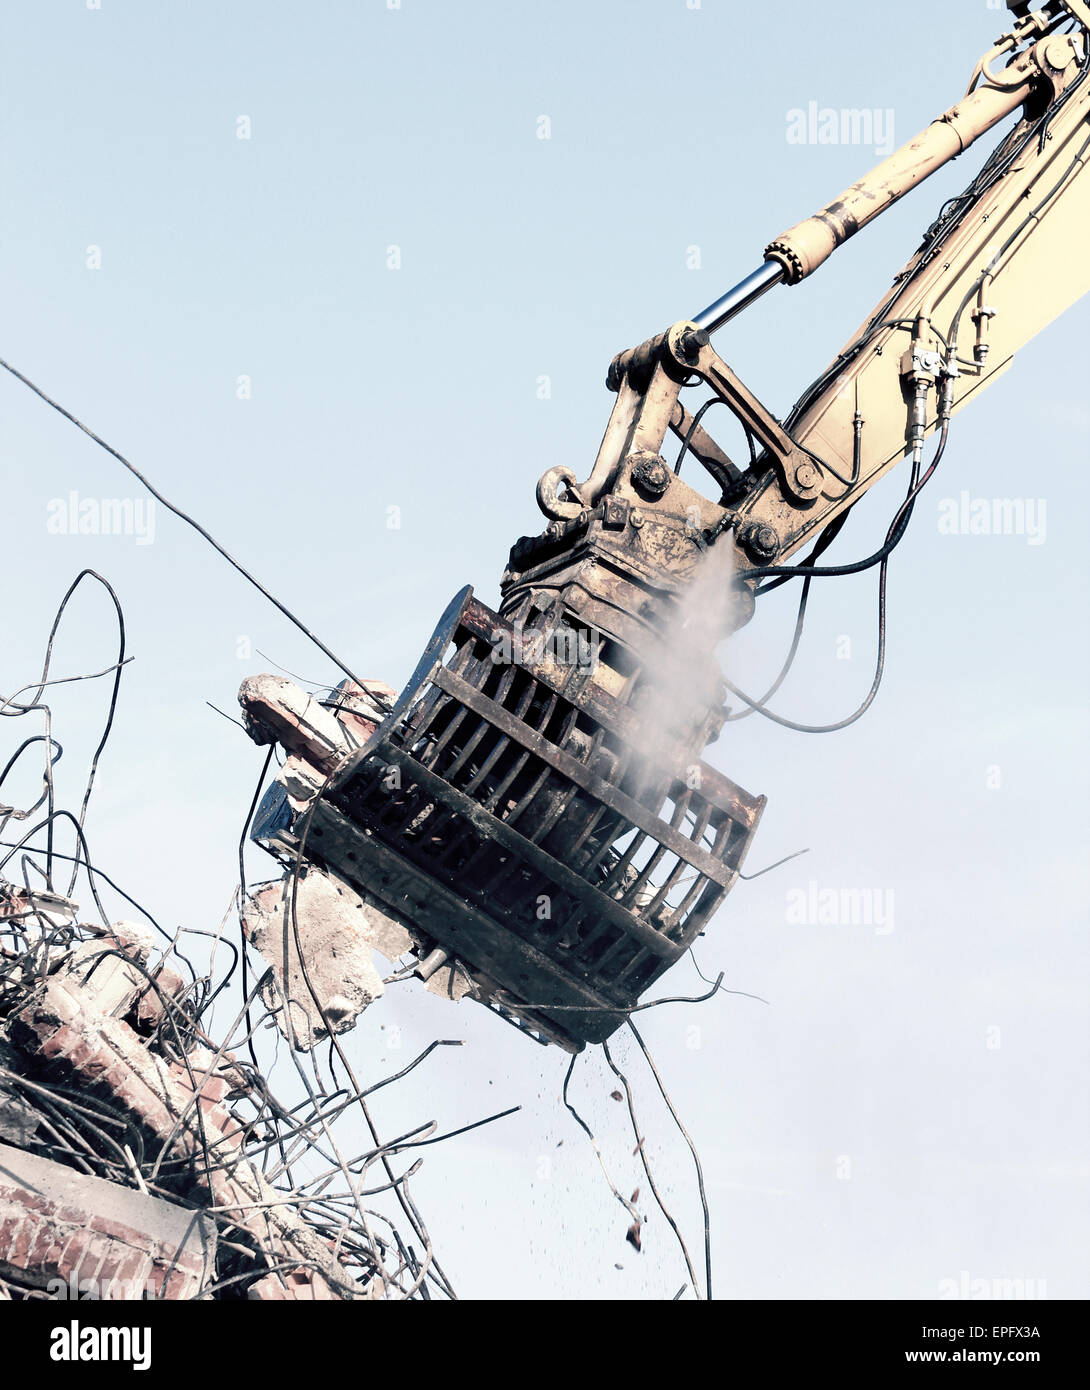 Demolition crane dismantling a building - Stock Image